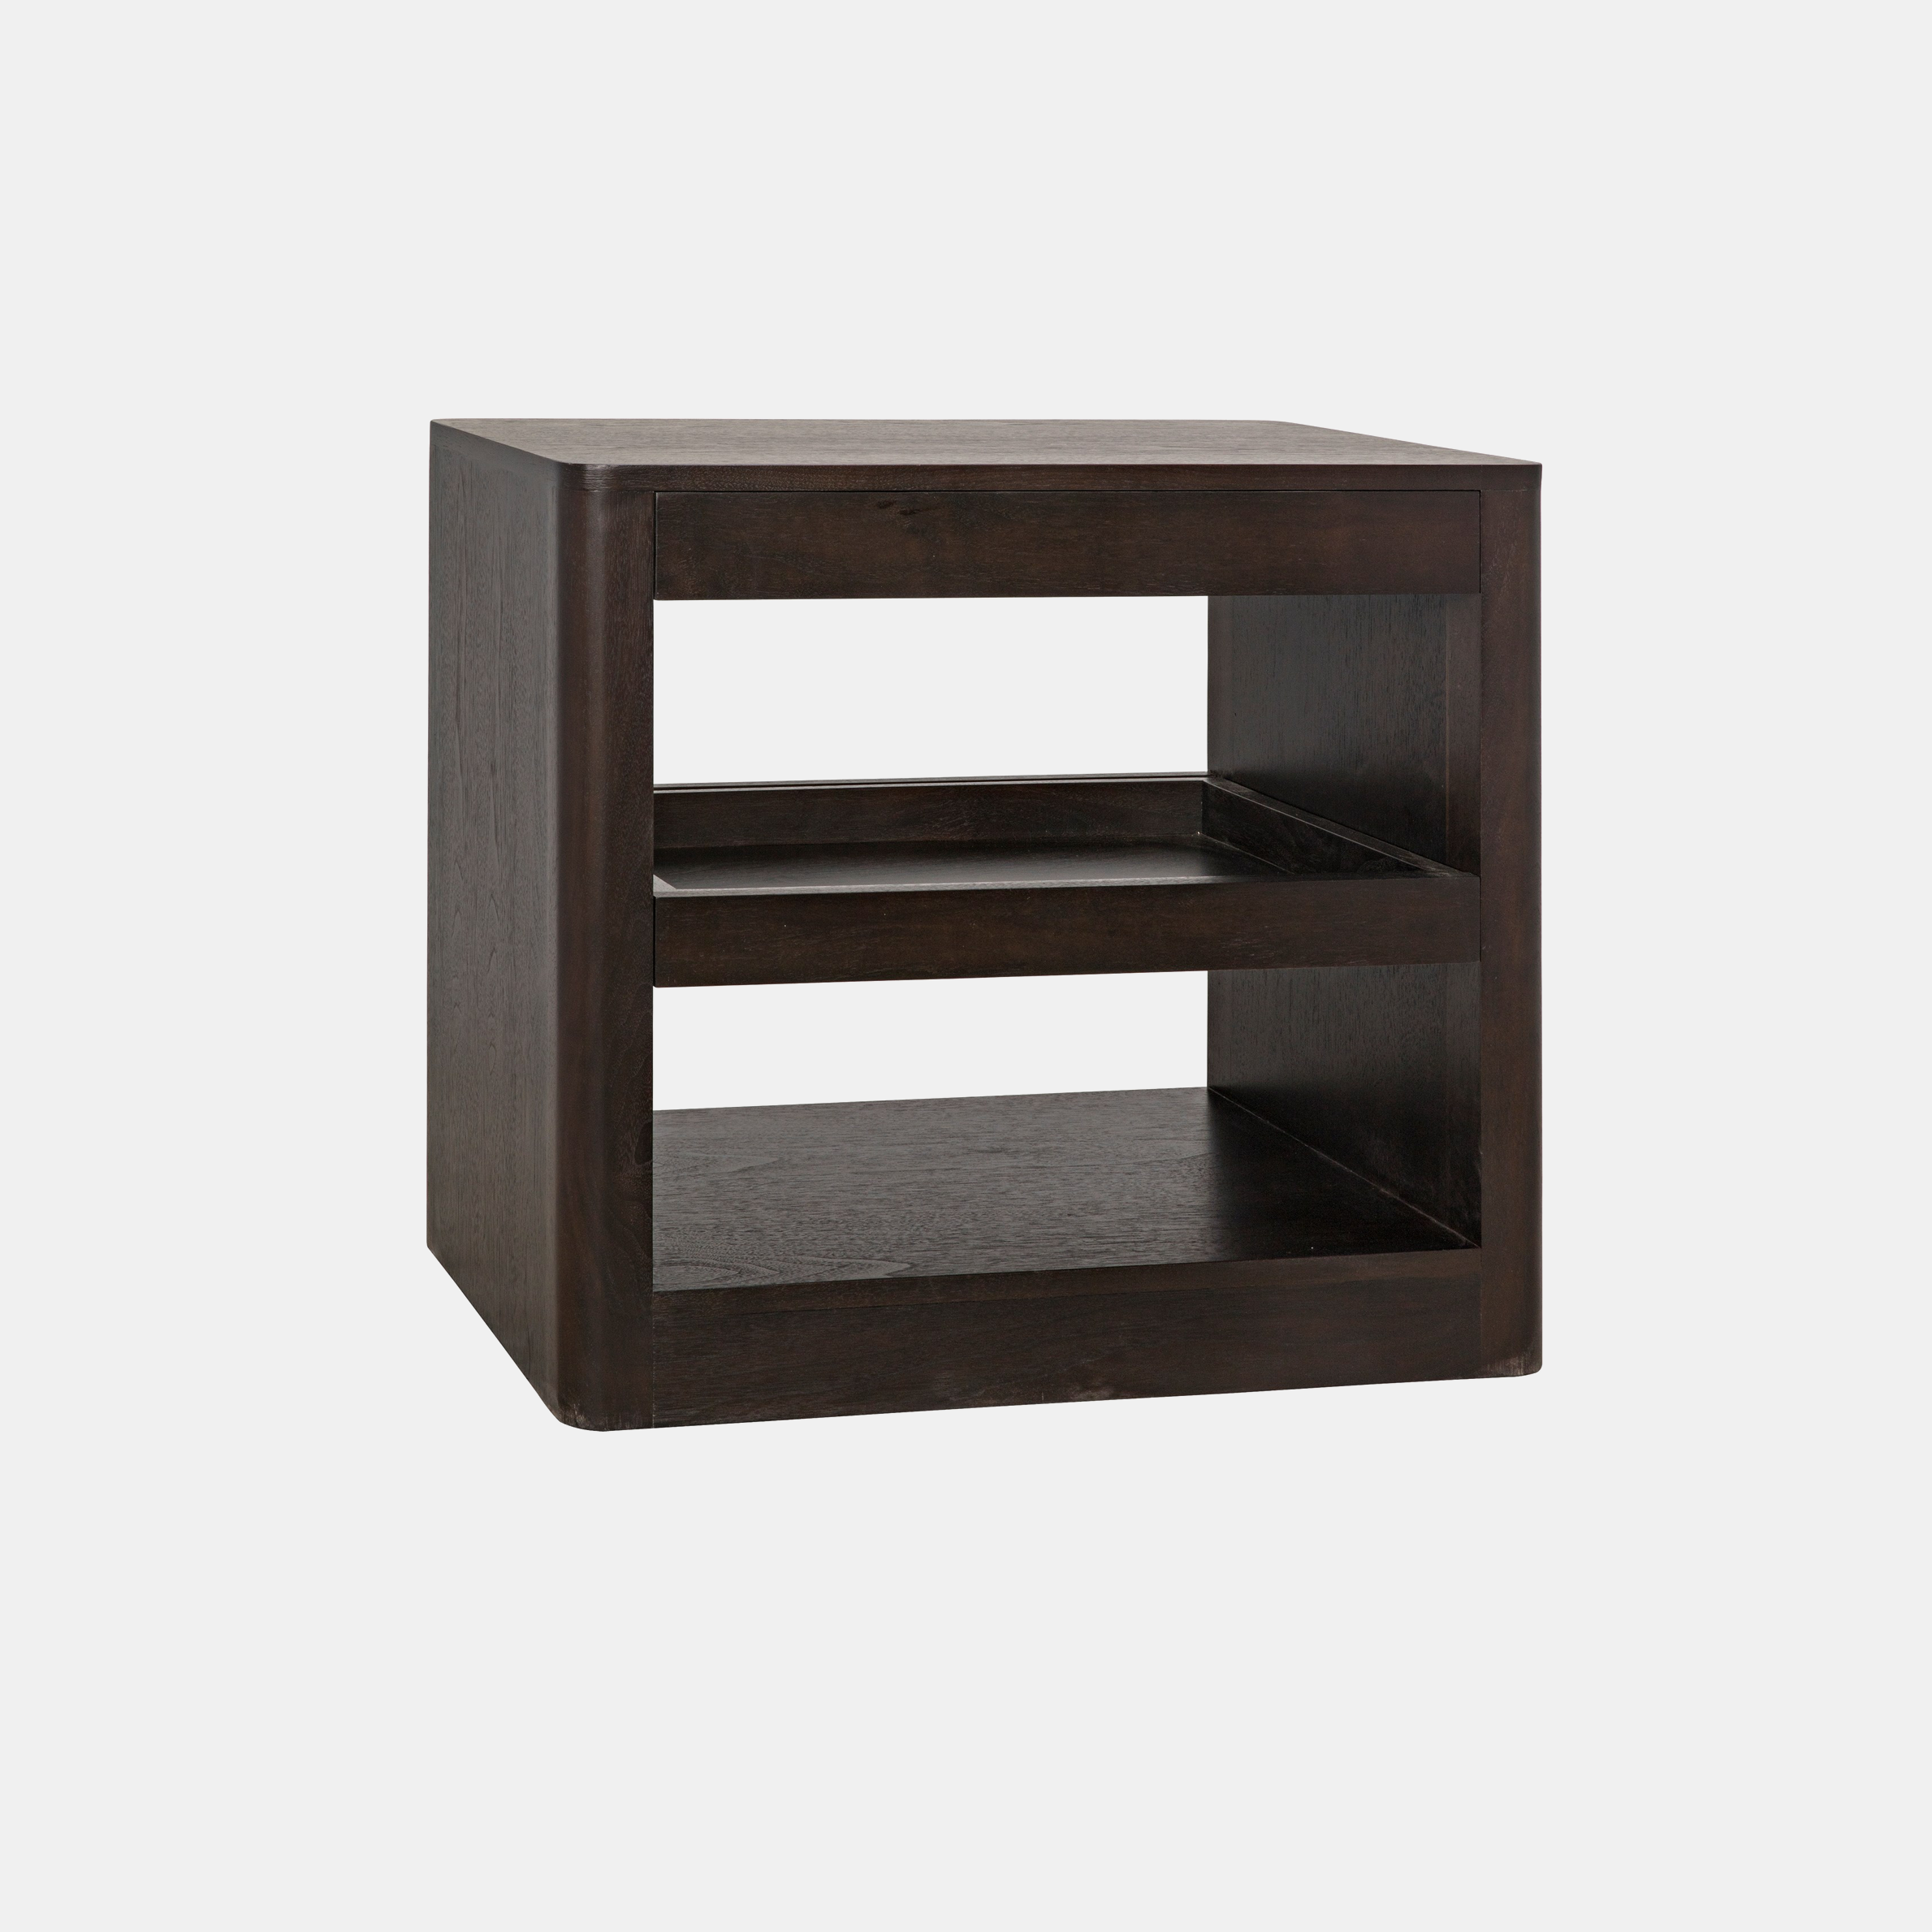 """Mayito Side Table  30""""l x 18""""d x 26.5""""h  Available in walnut (shown) or gray wash wax fir. SKU5390CFC"""